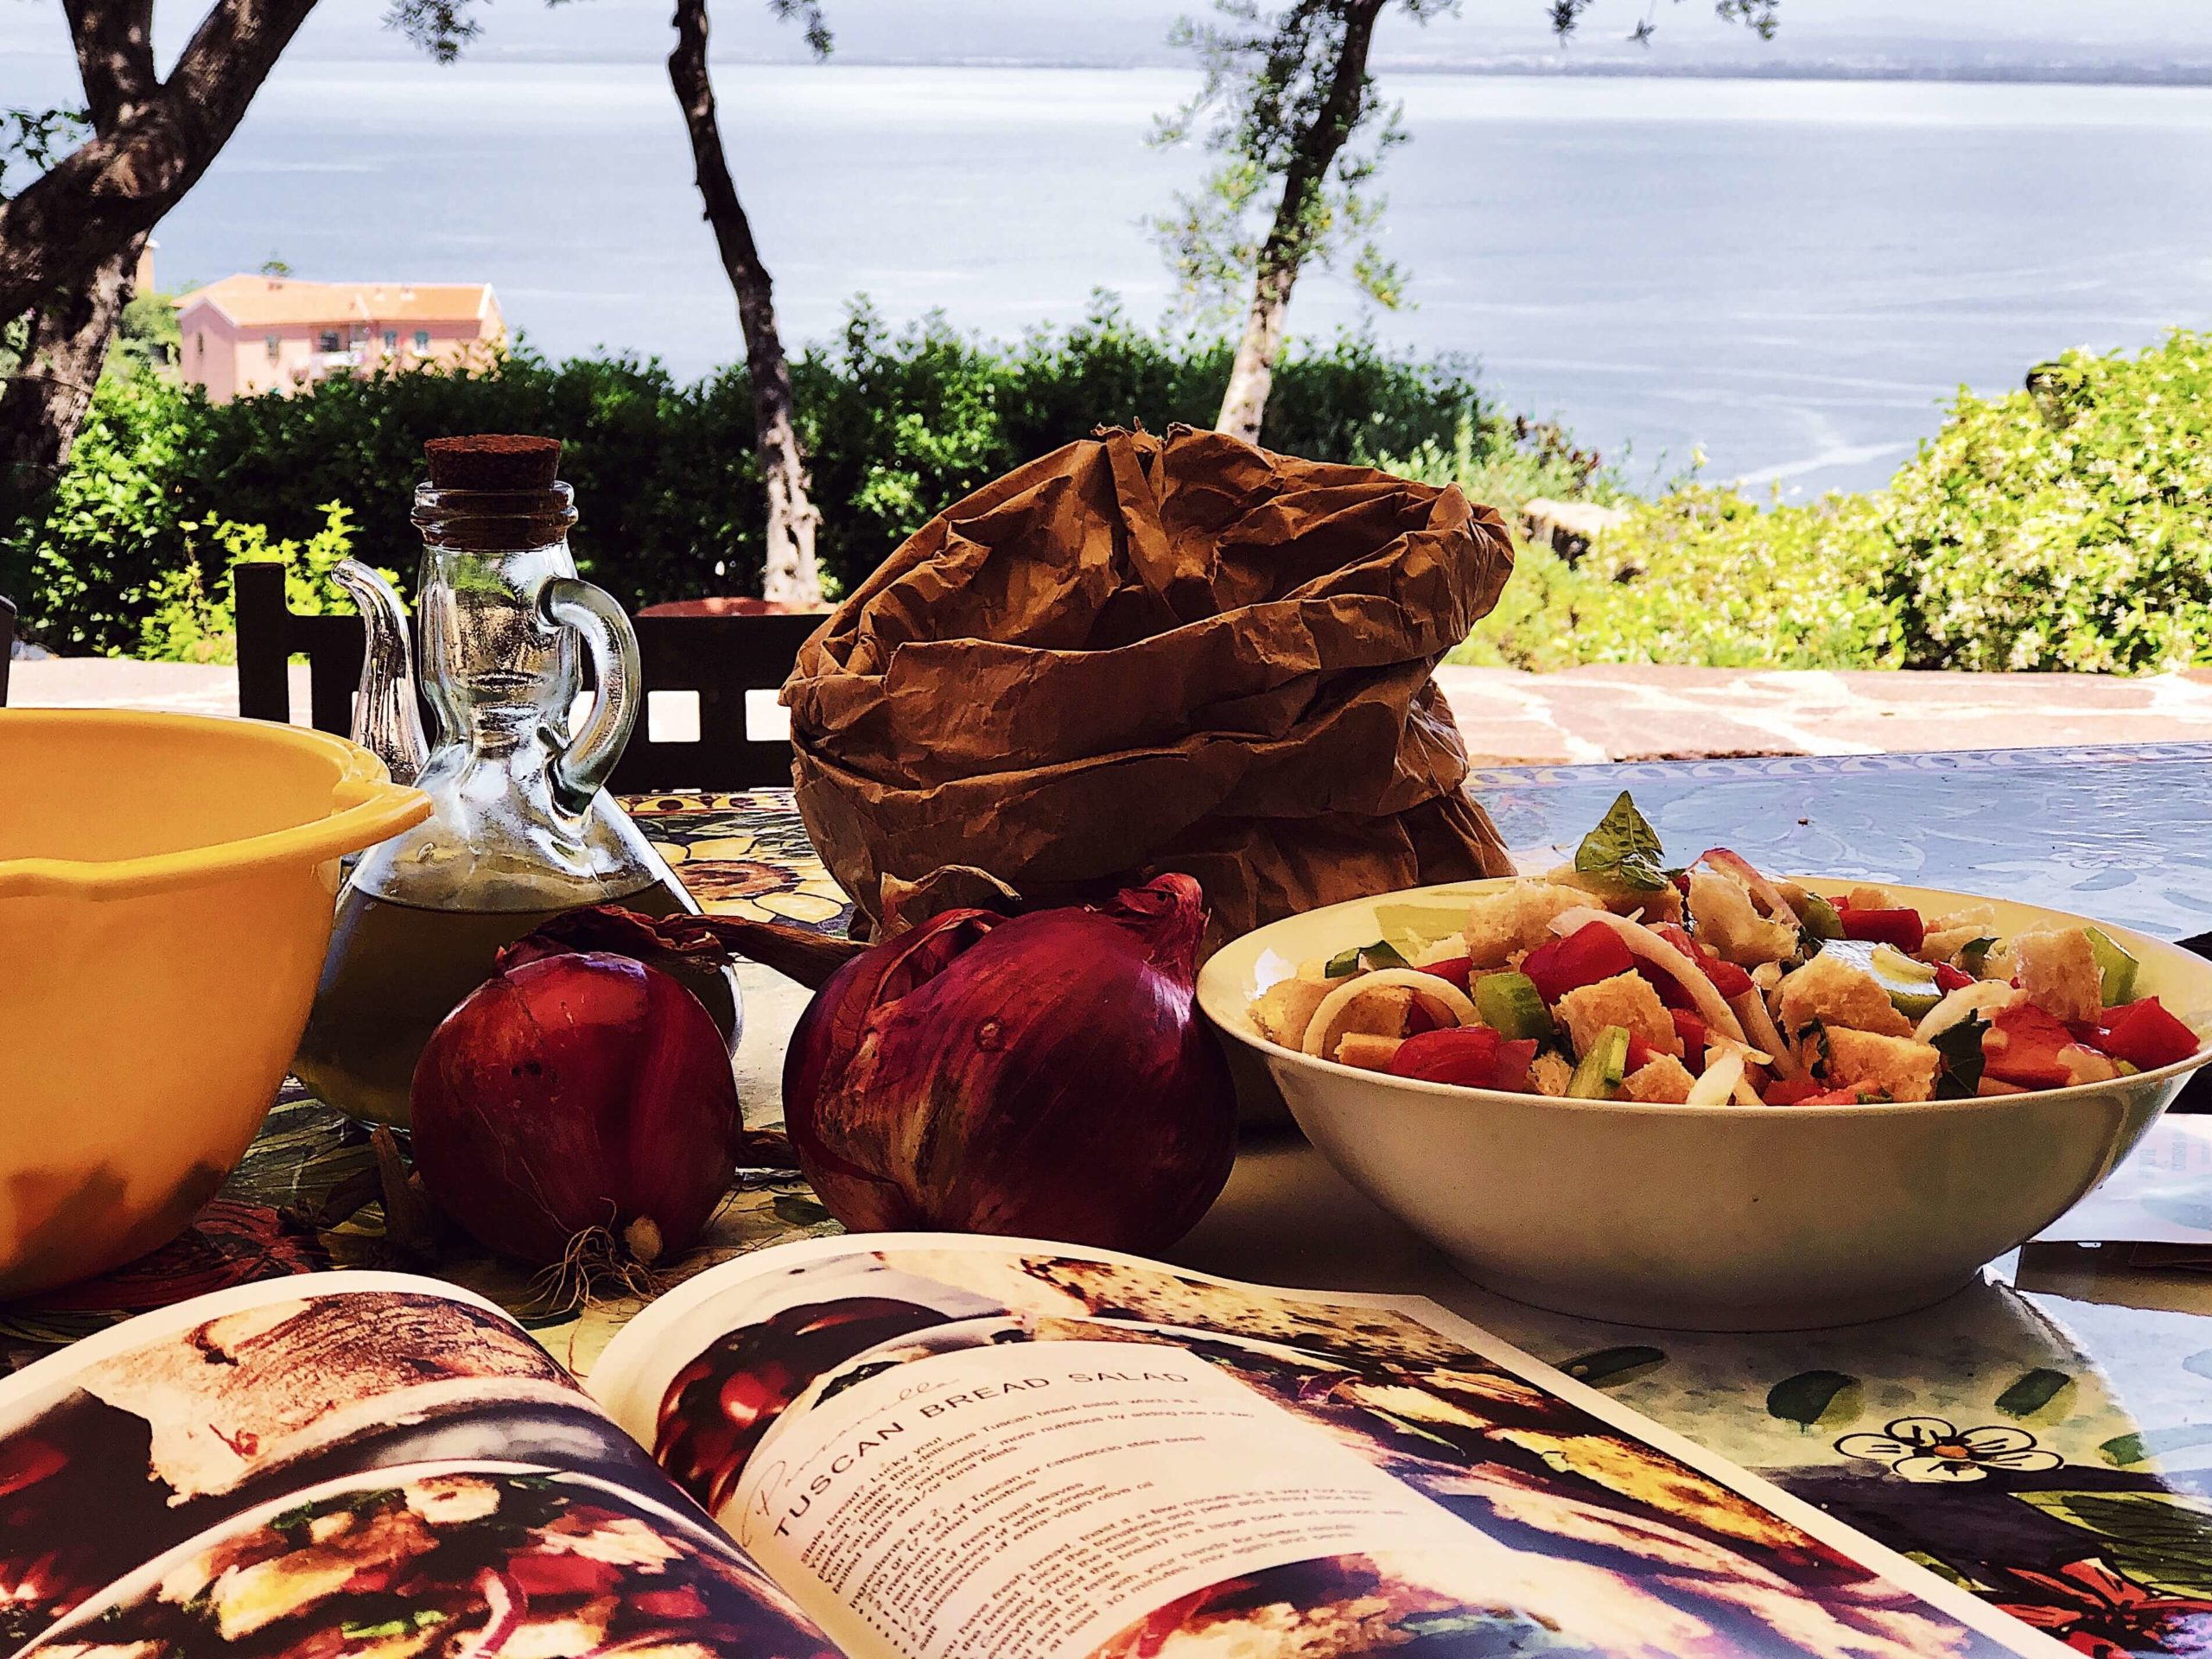 panzanella salad served for lunch with a summer Tuscan view